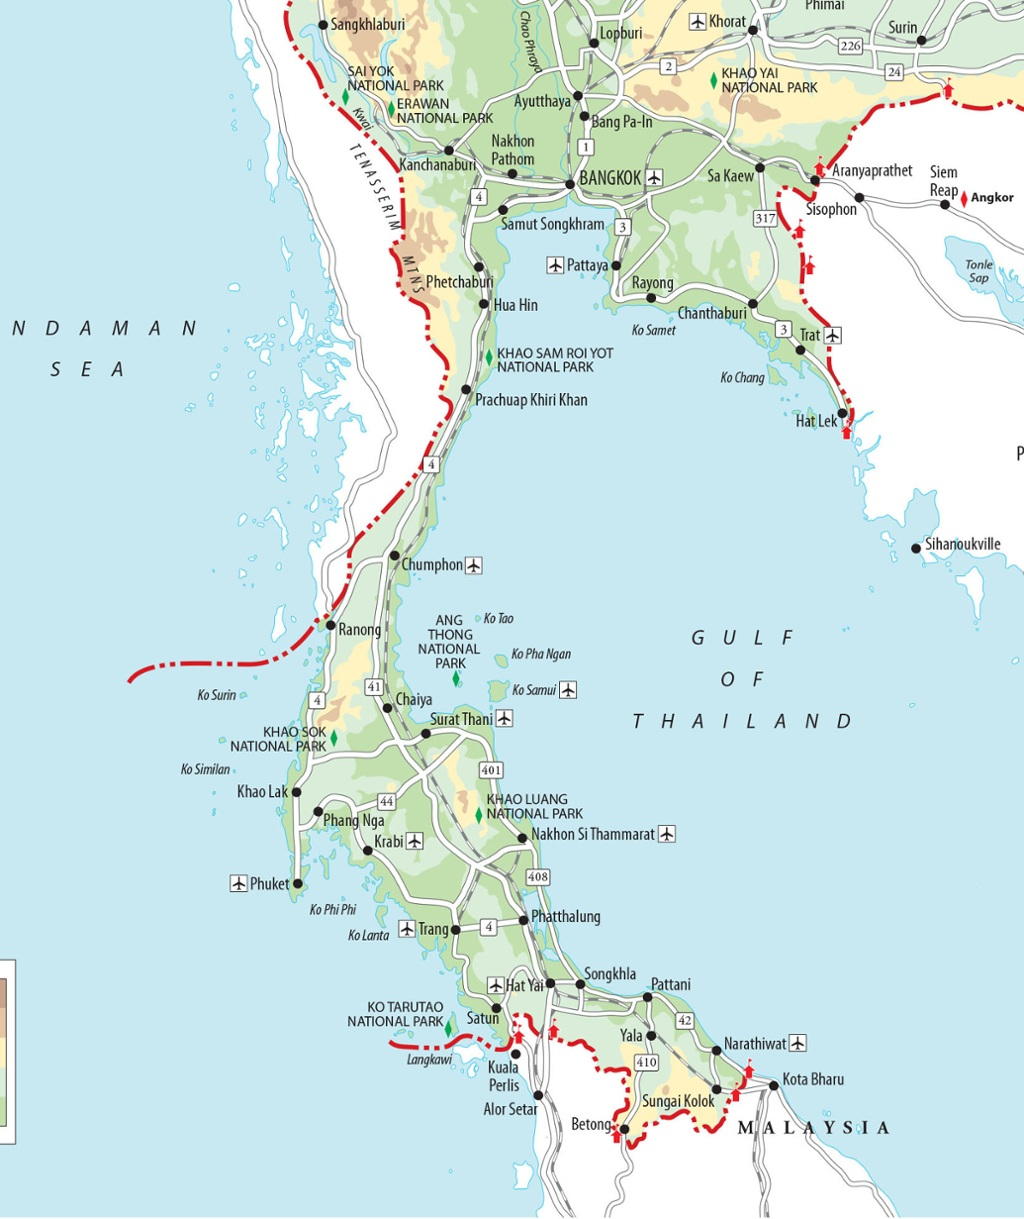 Map Of Thailand South Islands The Best Thailand Islands | Best Thai Islands | Rough Guides